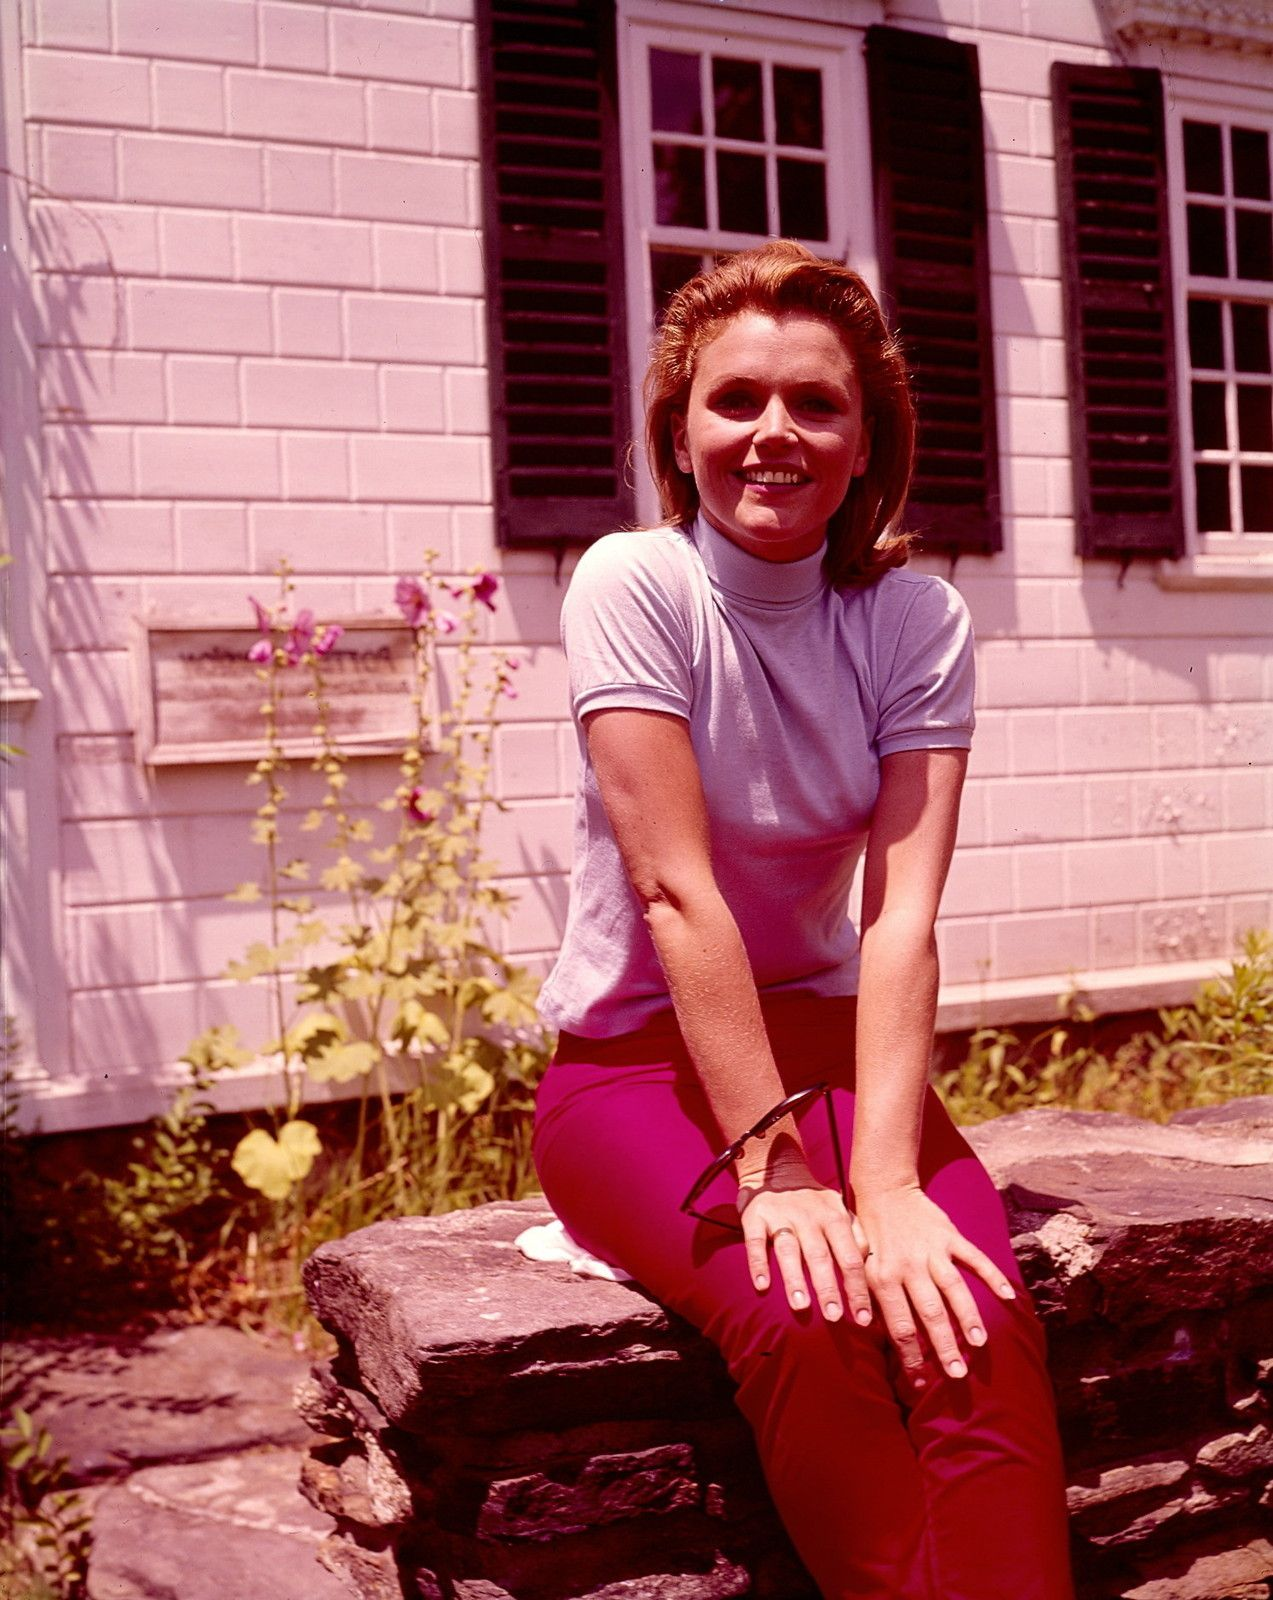 pimpandhost.com imgtrial uploadhouse  1000+ images about Lee Remick on Pinterest | The omen, Quincy massachusetts and Wine rose